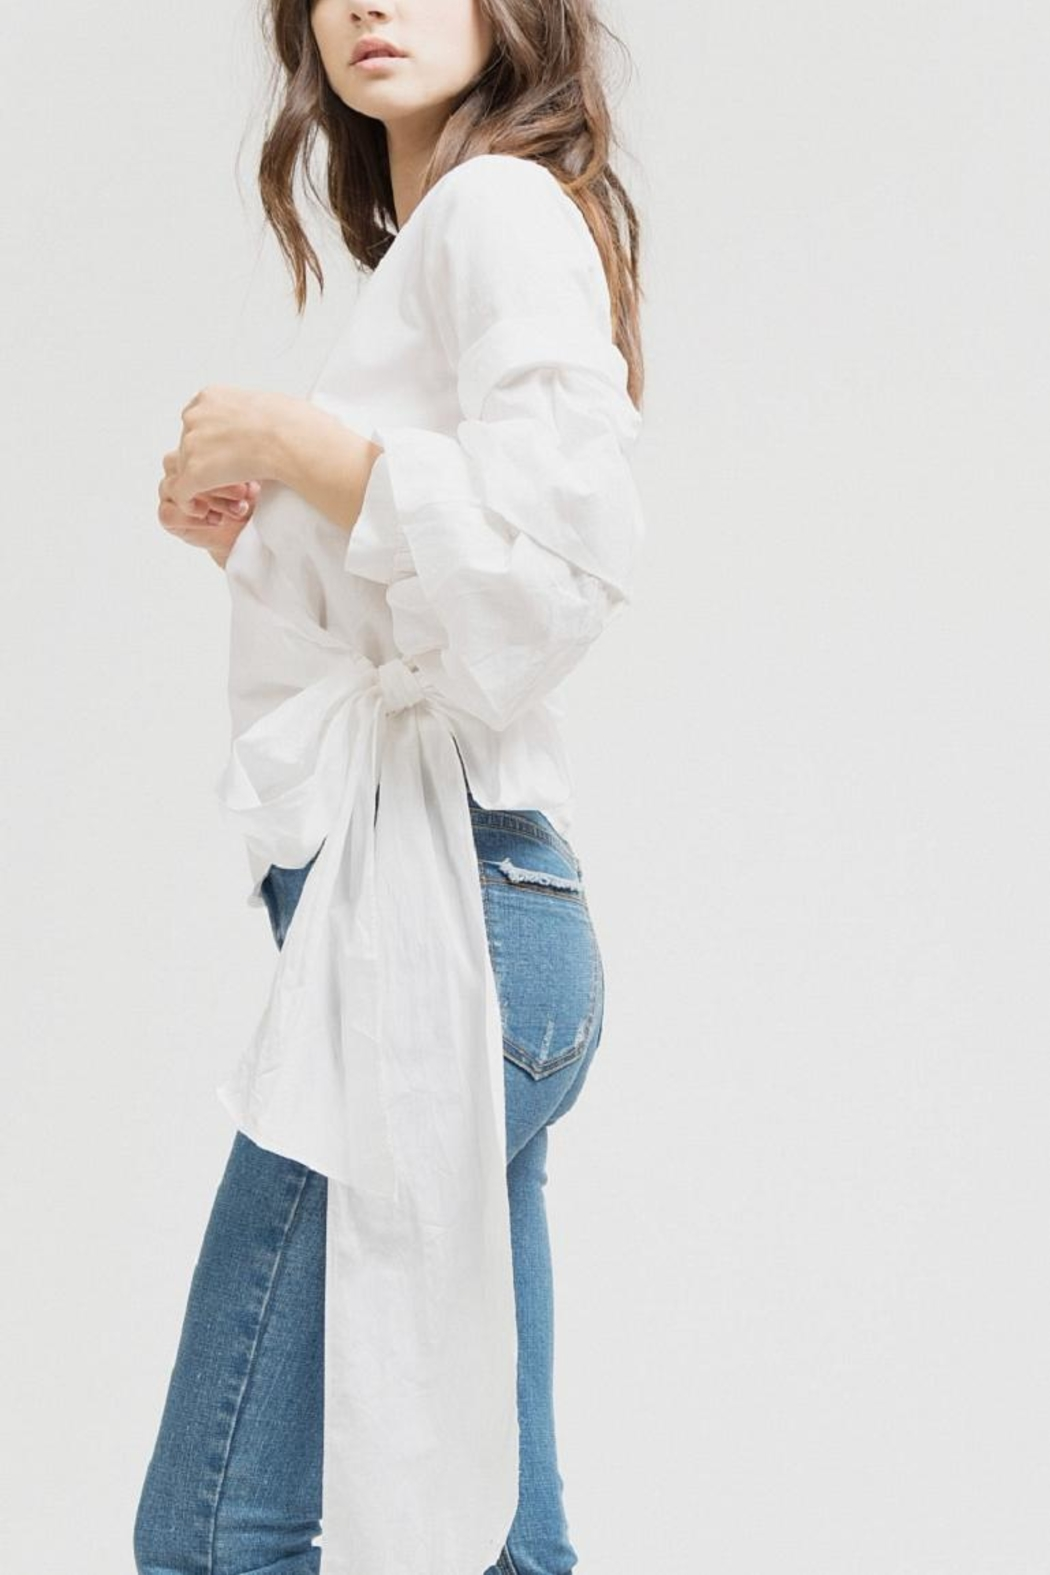 Blu Pepper White Wrap Top - Front Full Image